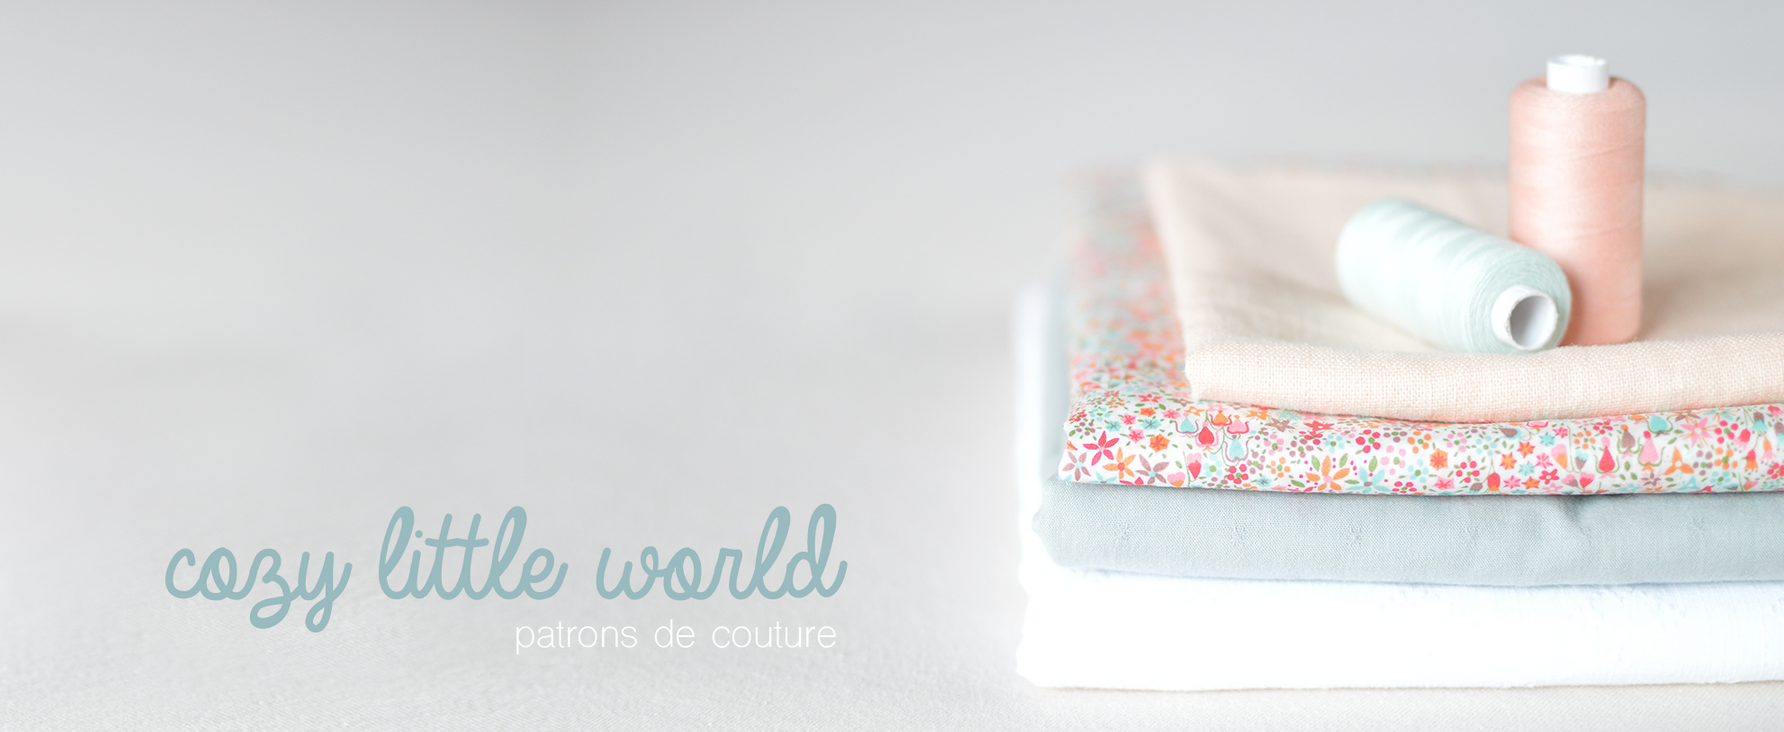 marque de patron de couture cosy little world